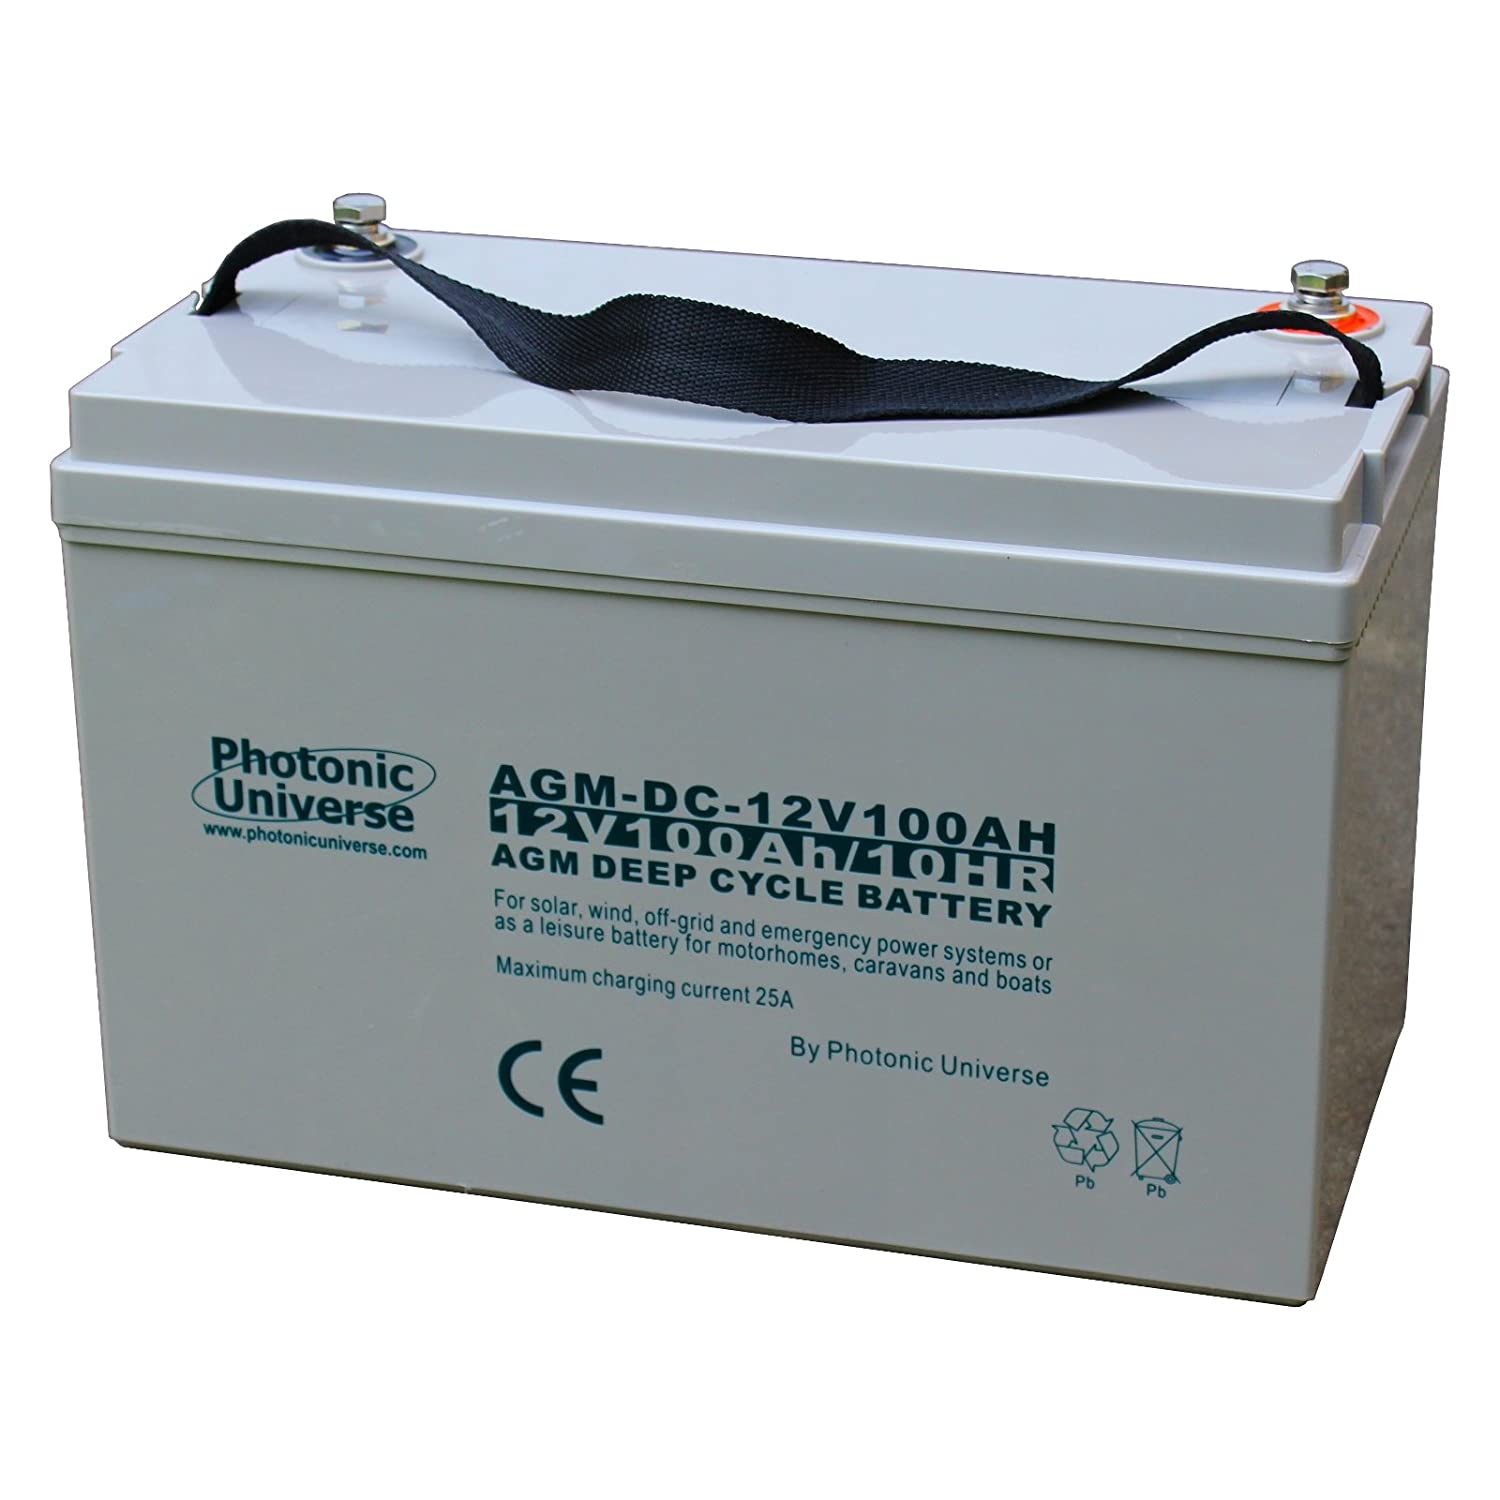 100Ah 12V Photonic Universe deep cycle AGM battery for a motorhome, caravan, campervan, boat (leisure battery), solar, wind UPS or back up/off-grid power systems AGM100AH